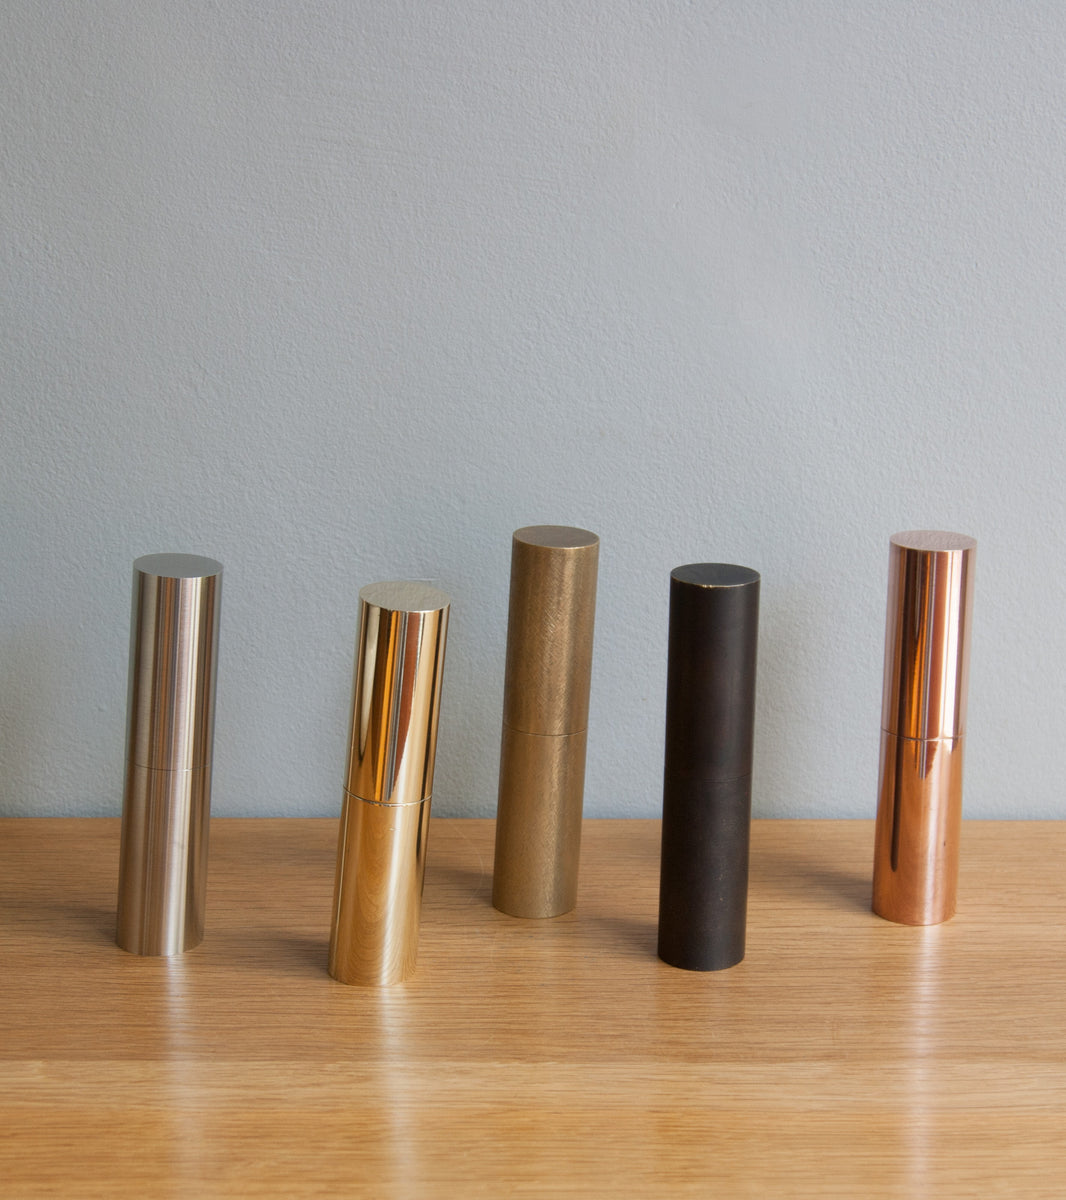 Italic Mill - Copper Plated Michael Anastassiades & Carl Auböck (Variety View)